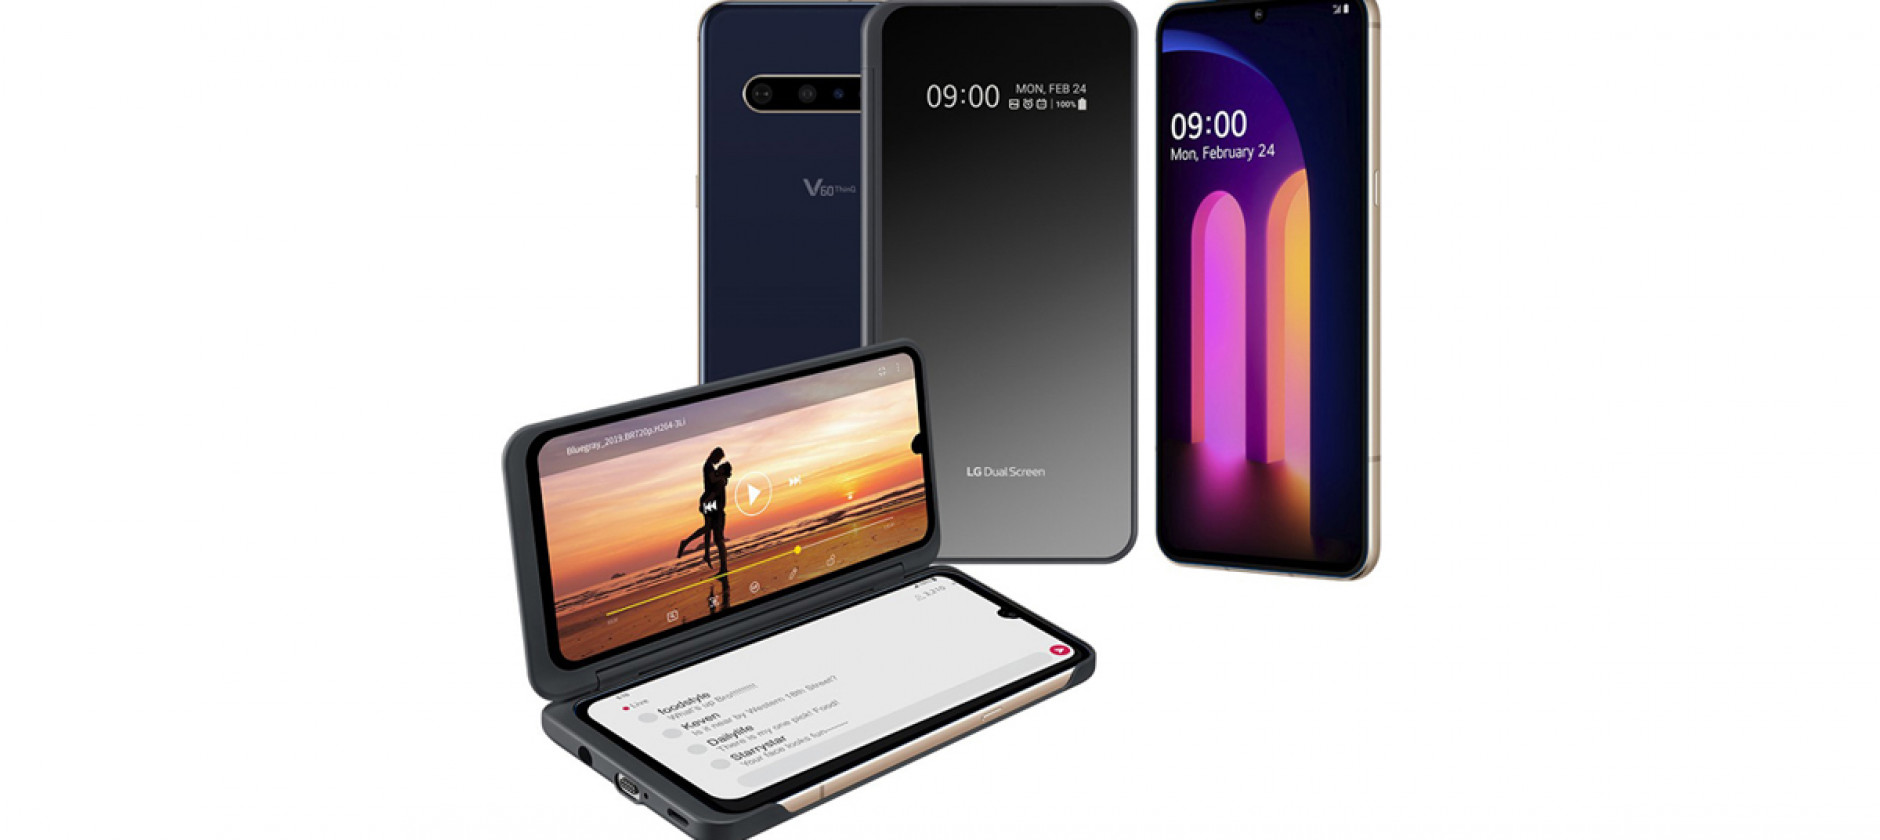 LG V60 ThinQ 5G è perfetto per la multimedialità e l'intrattenimento